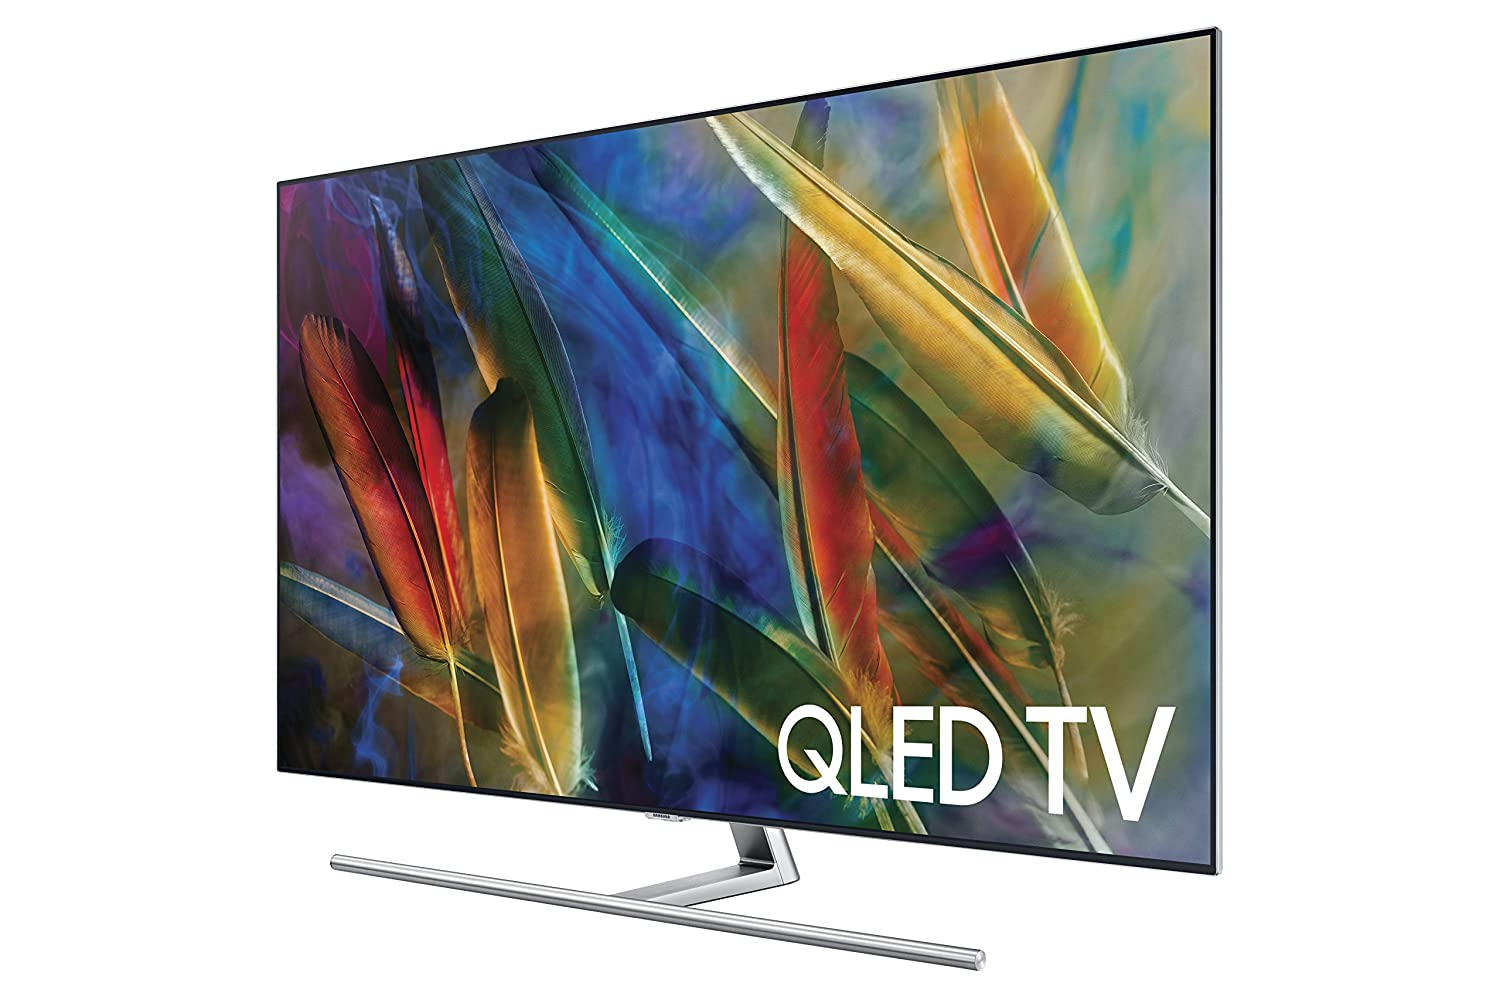 Samsung 65-Inch 4K Ultra HD Smart QLED QN65Q7F TV